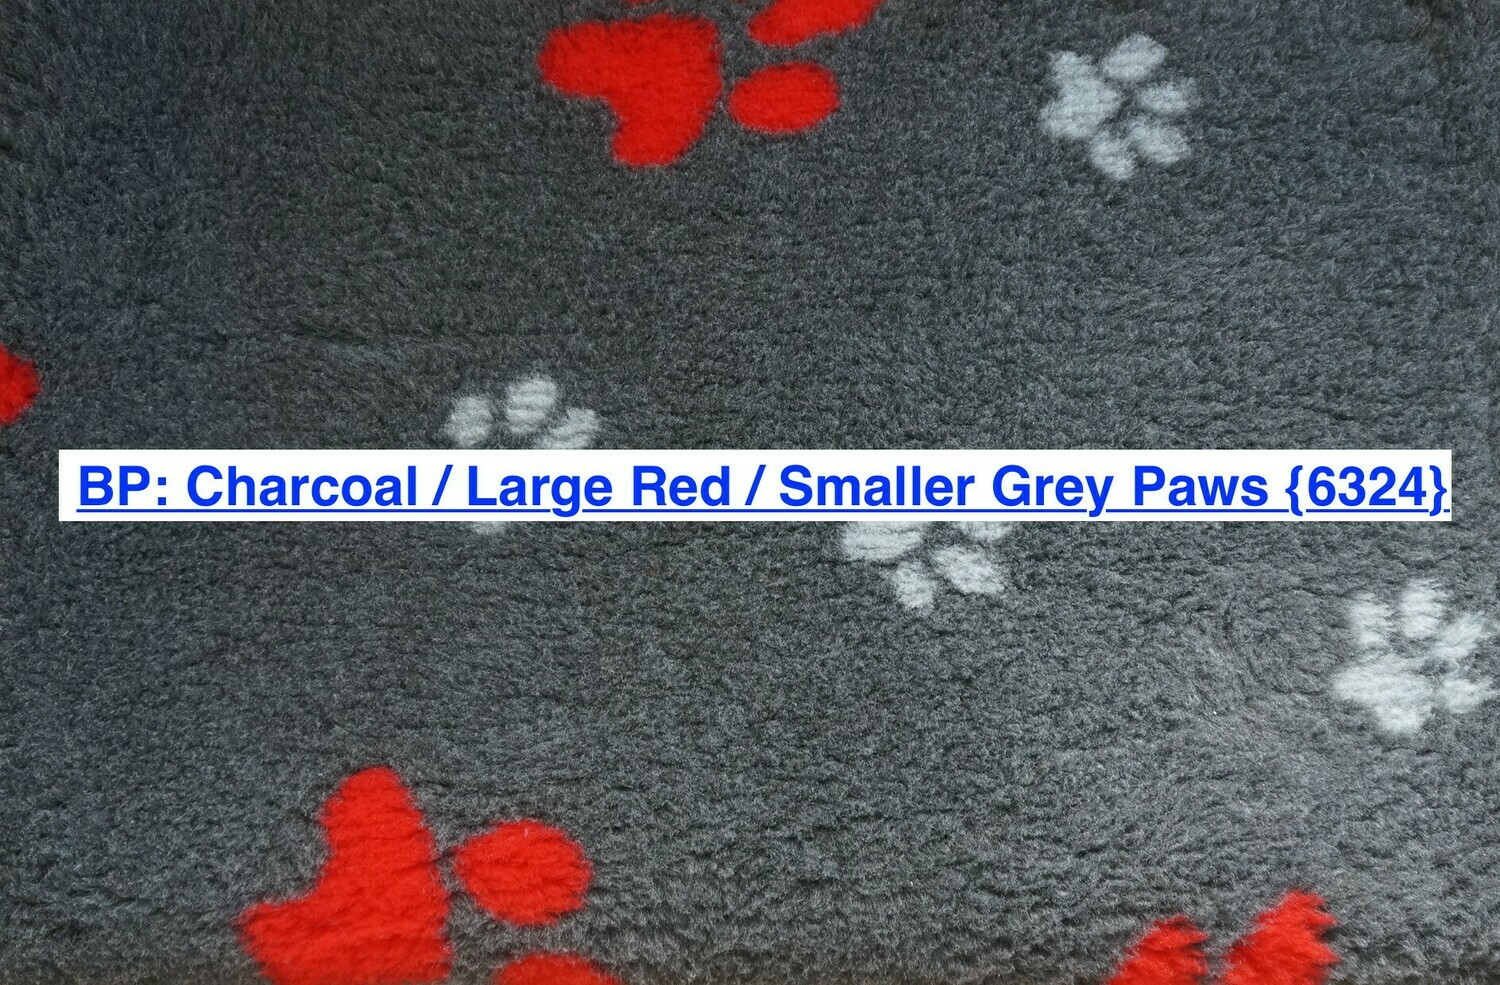 {15 x Metre Roll} : Ultra Premium - Non Slip Backing :  Big Paw : Charcoal with Large Red and Smaller Grey Paws - Ref : (6324)